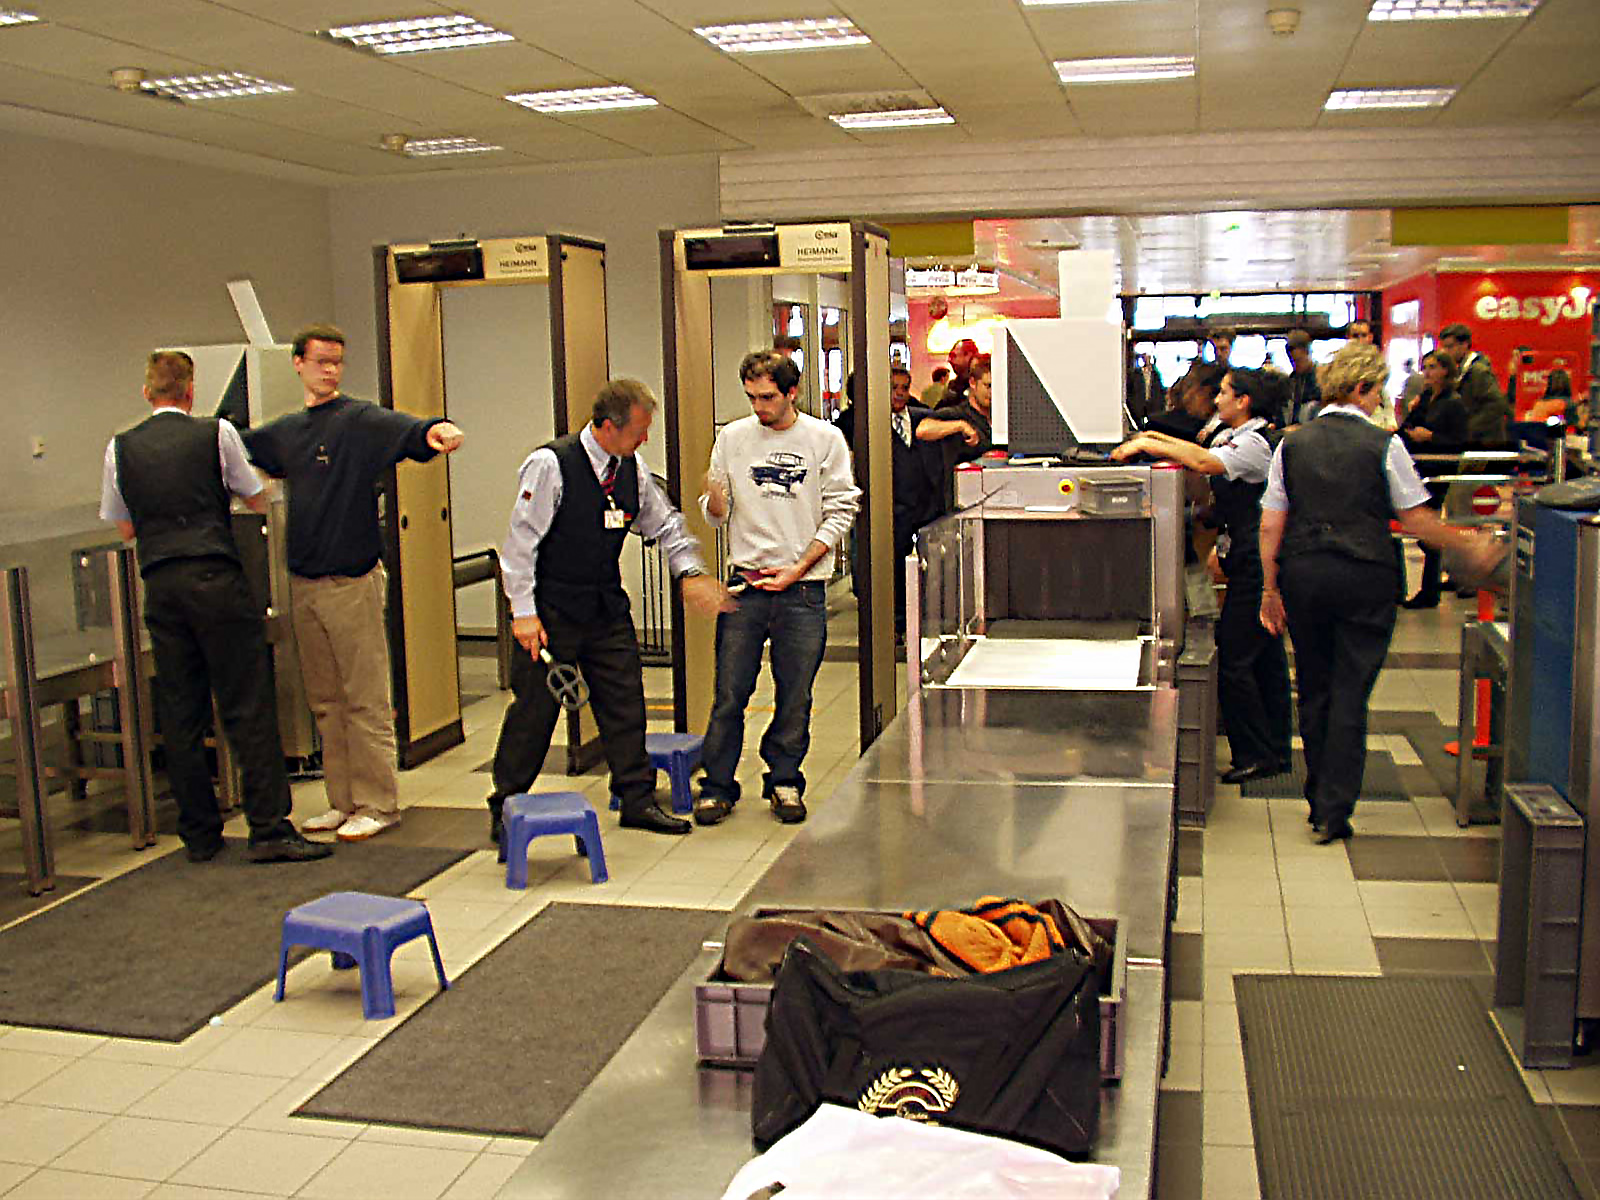 airport security problems essay